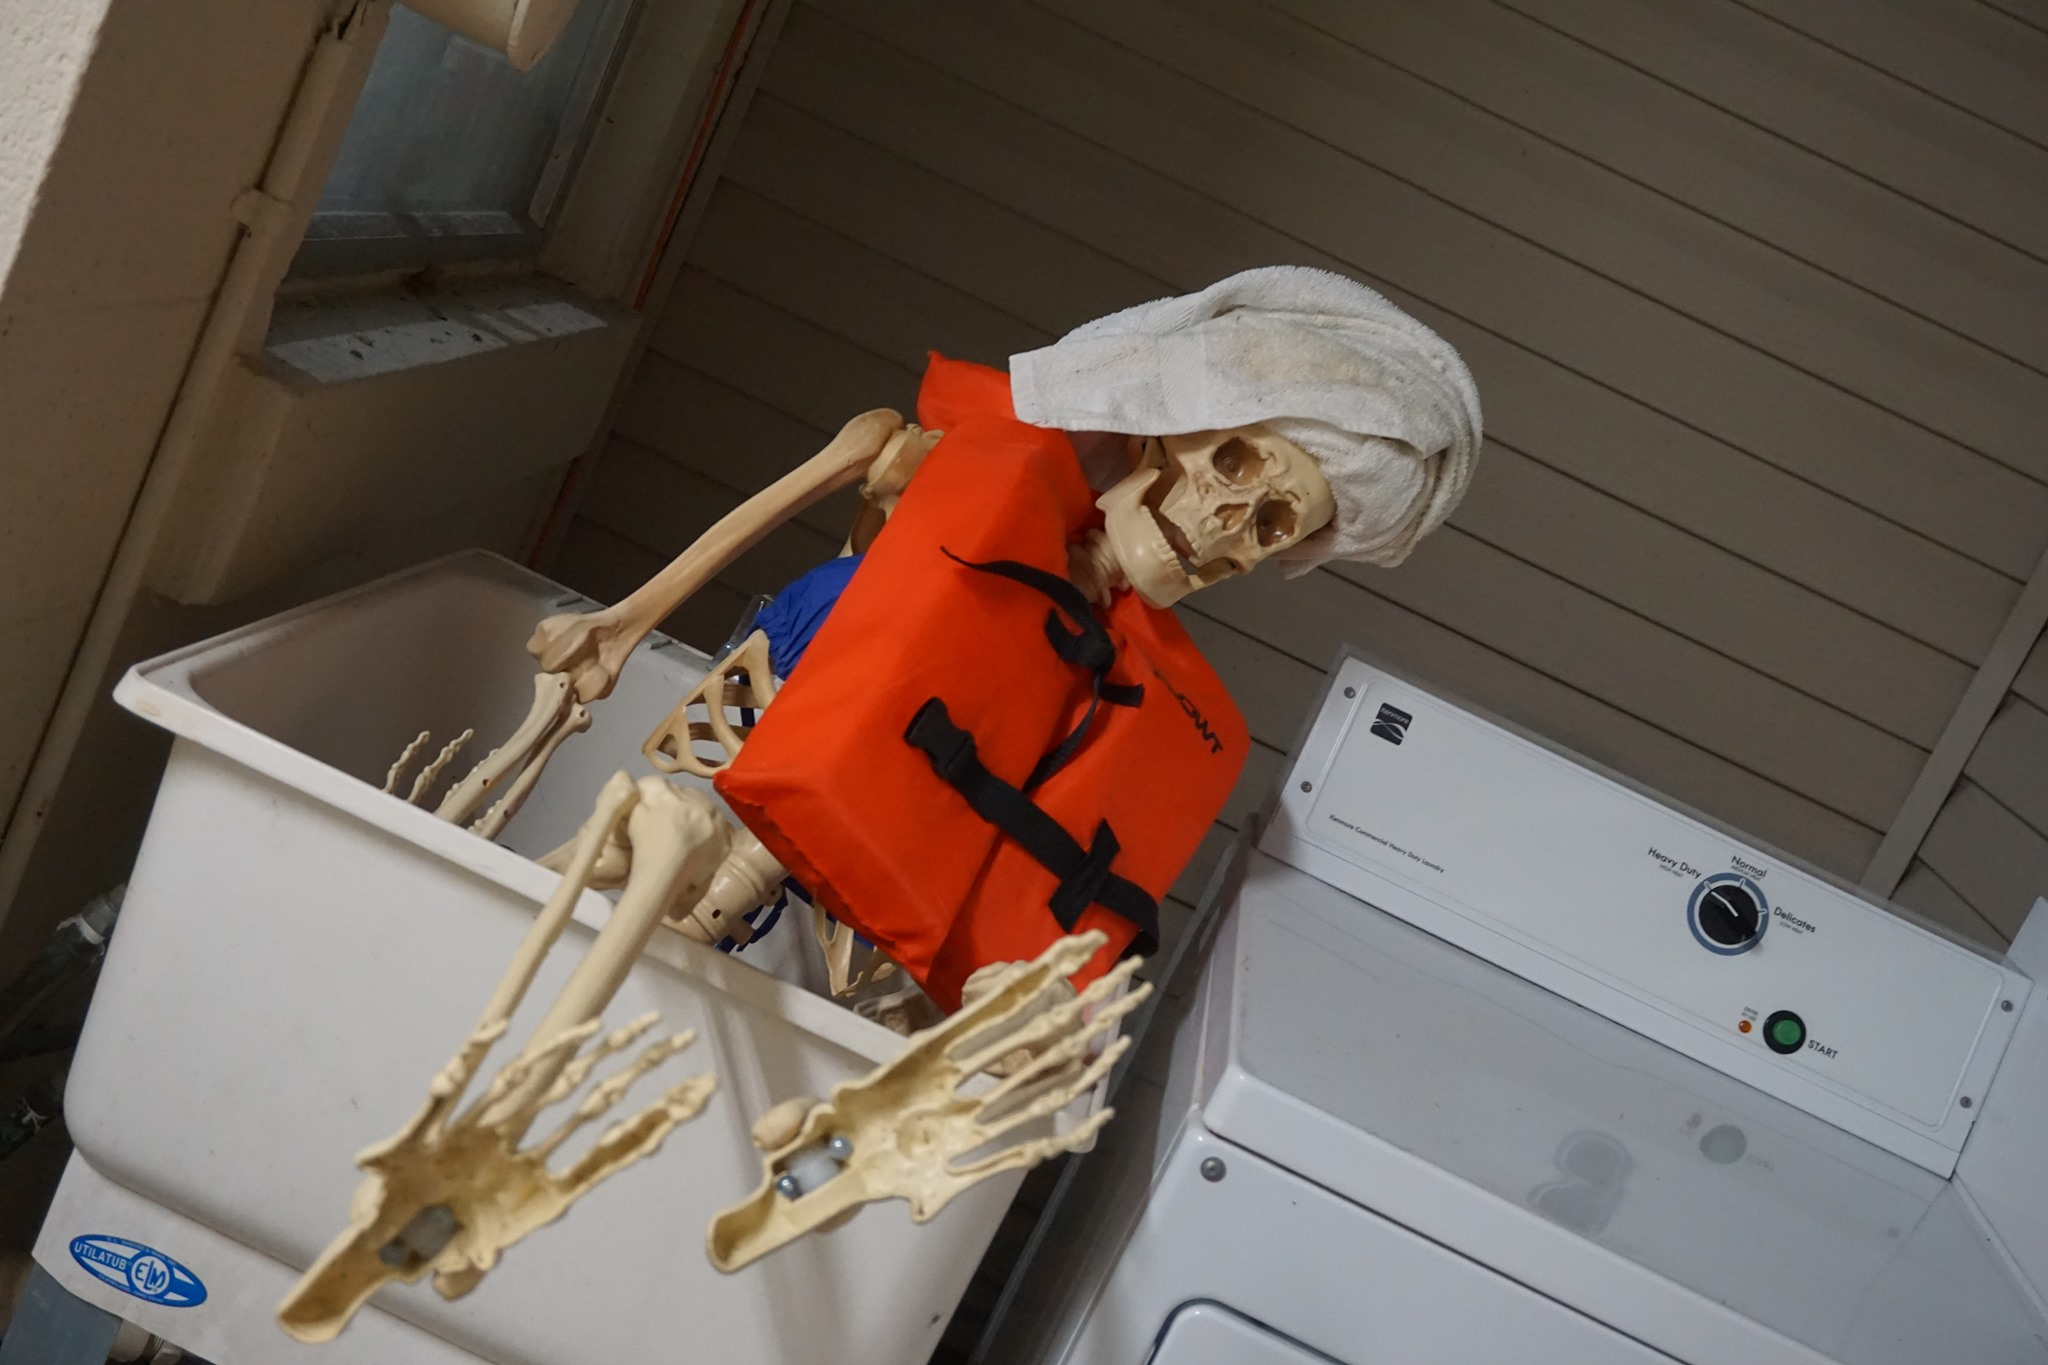 Skeleton with a lifejacket and towel in laundry room at campground